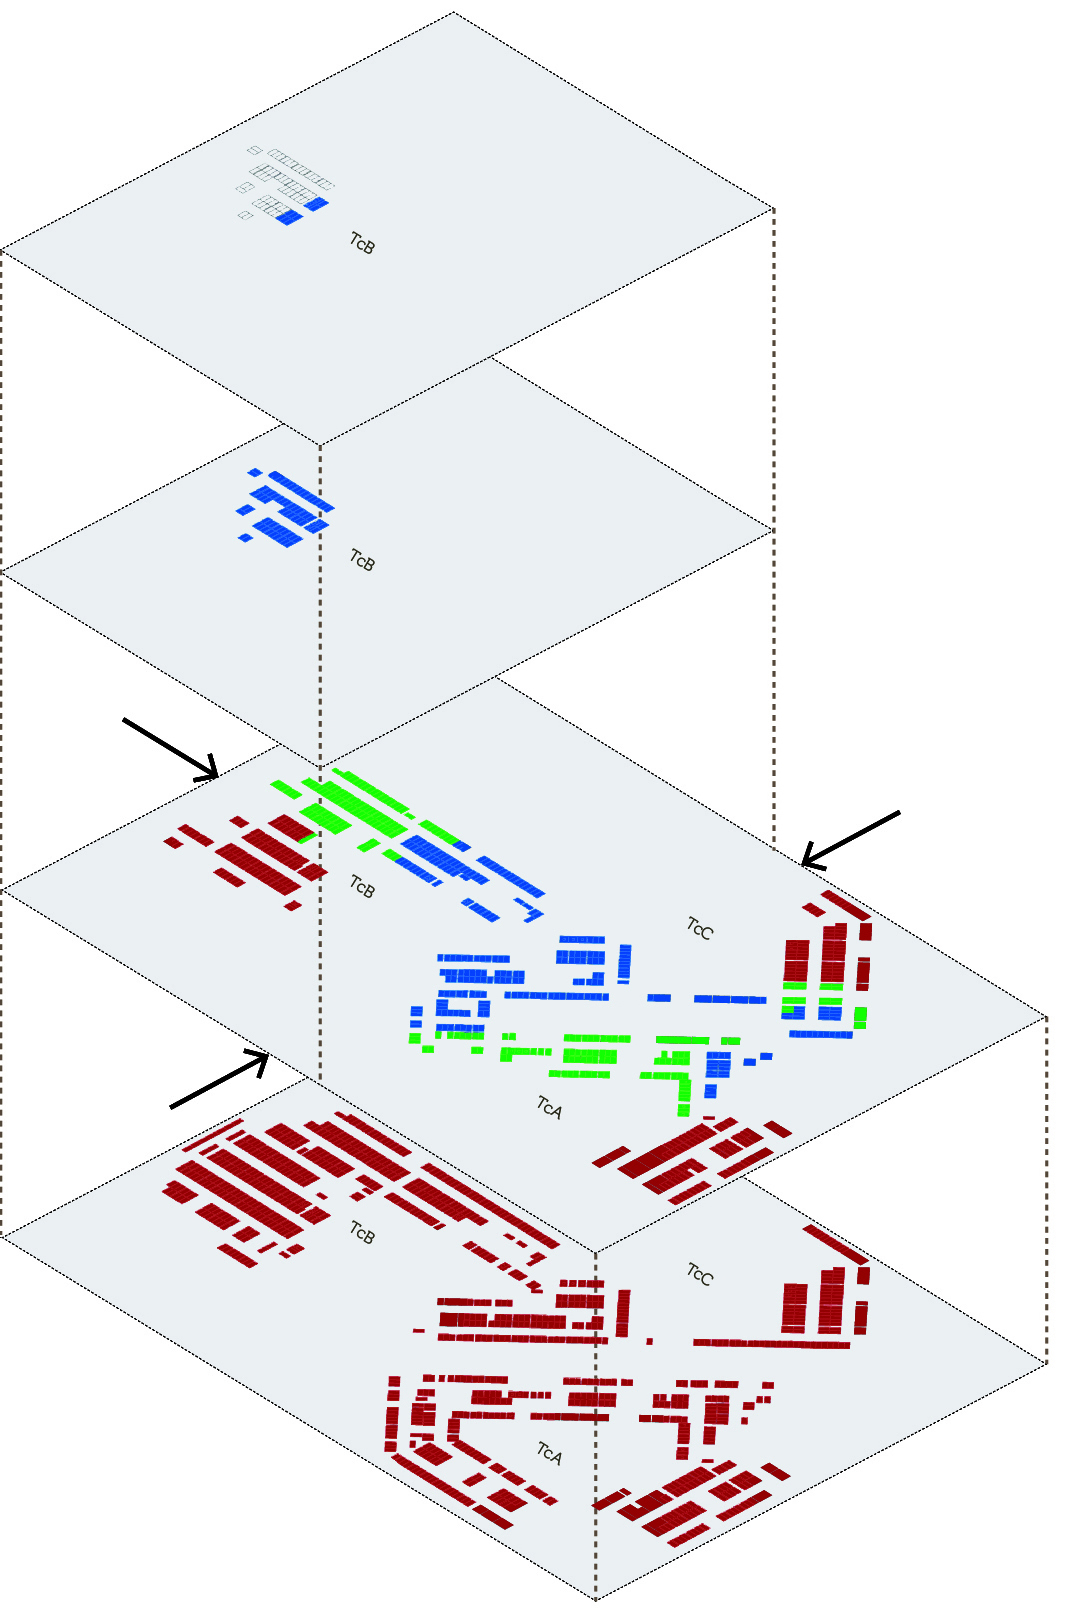 Systematica-CityLife Development-Shared Parking Strategy